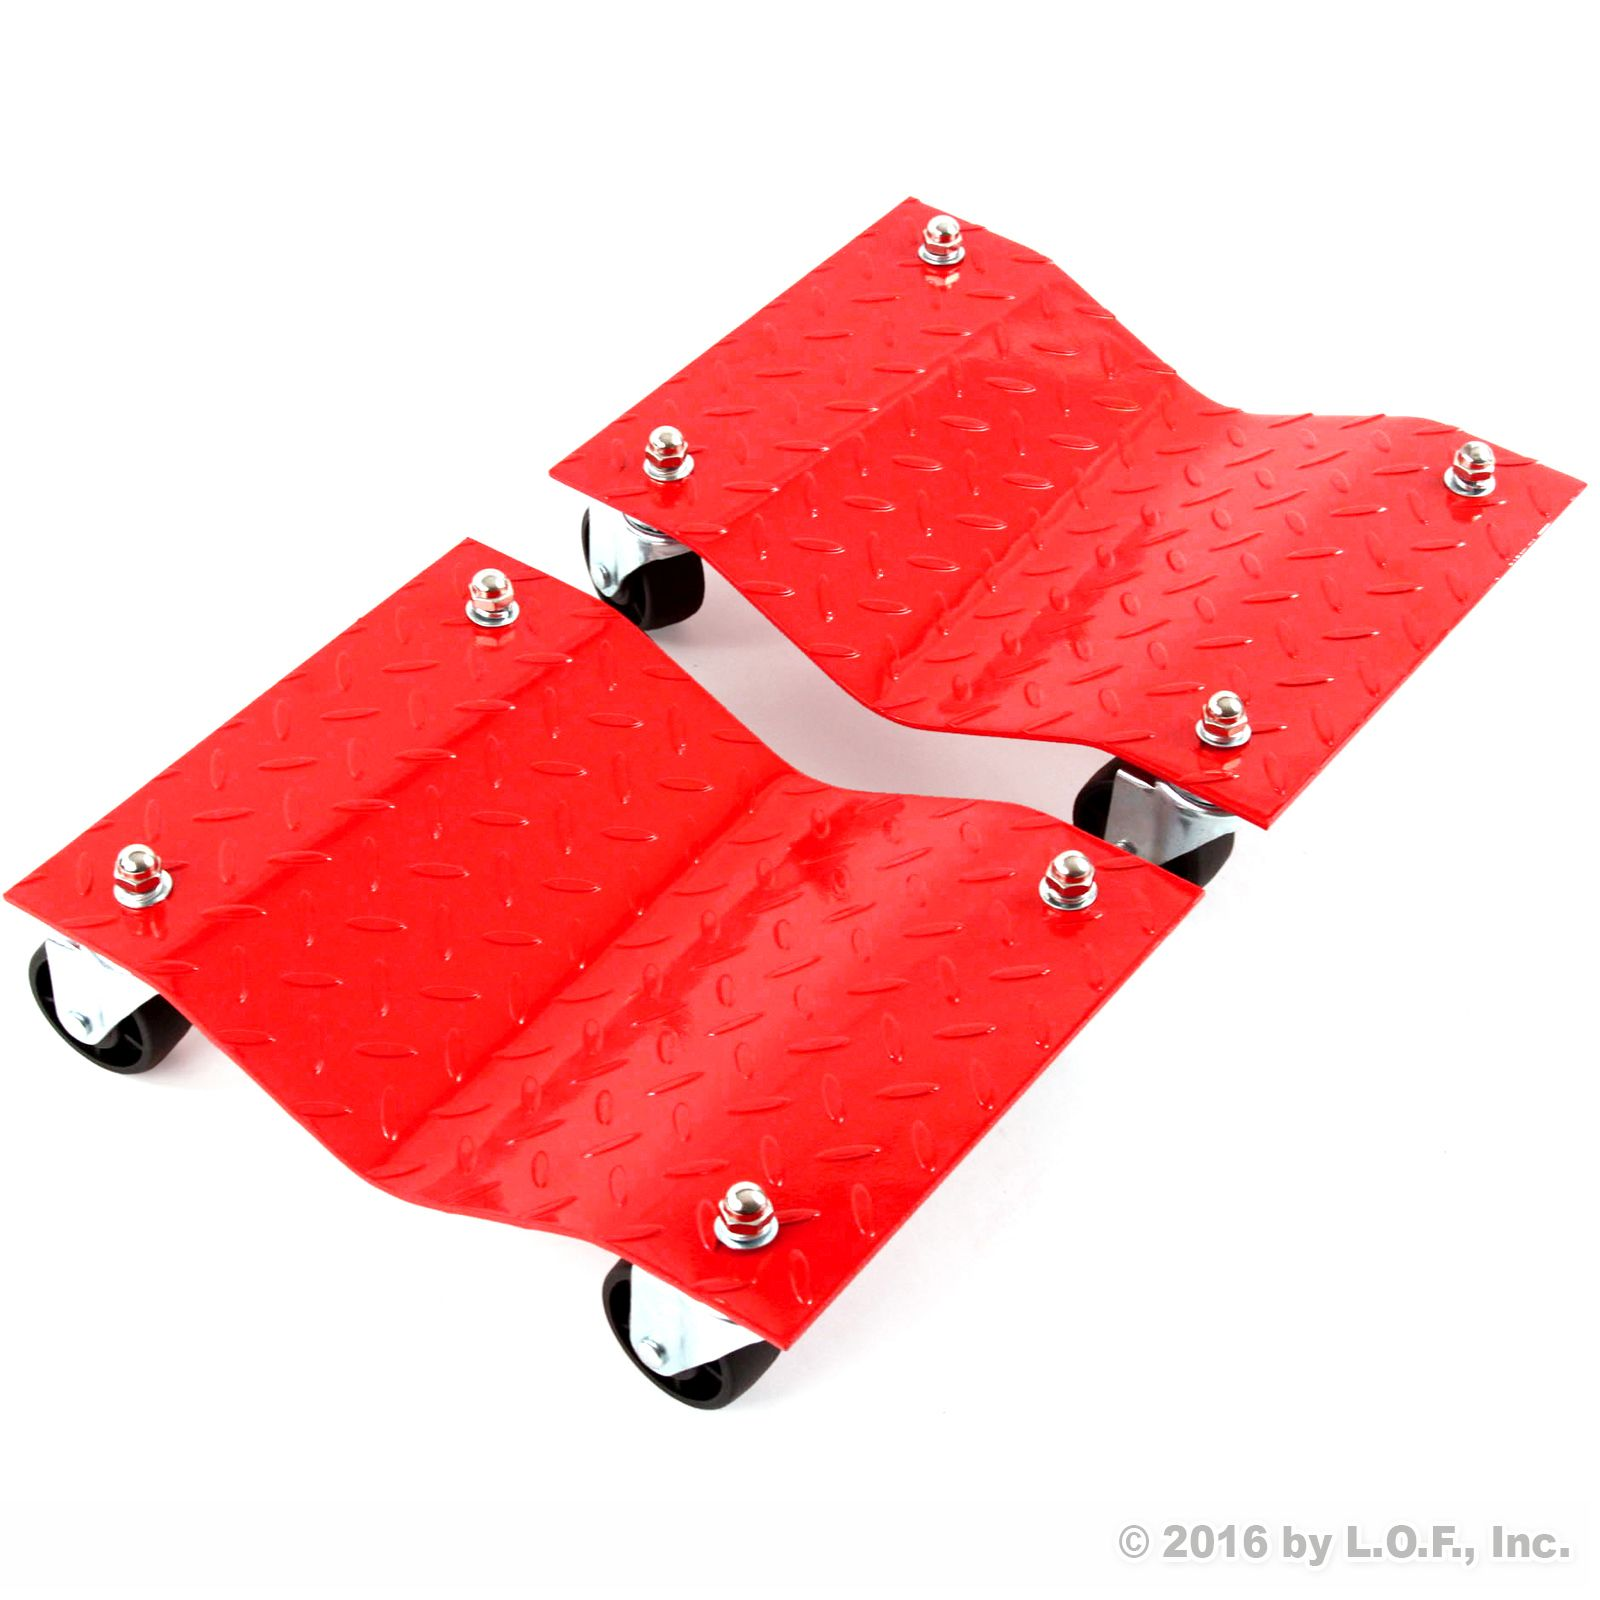 "2 - Red 12"" Tire Skates Premium Wheel Car Dolly Ball Bearings Skate Makes Moving A Car Easy"